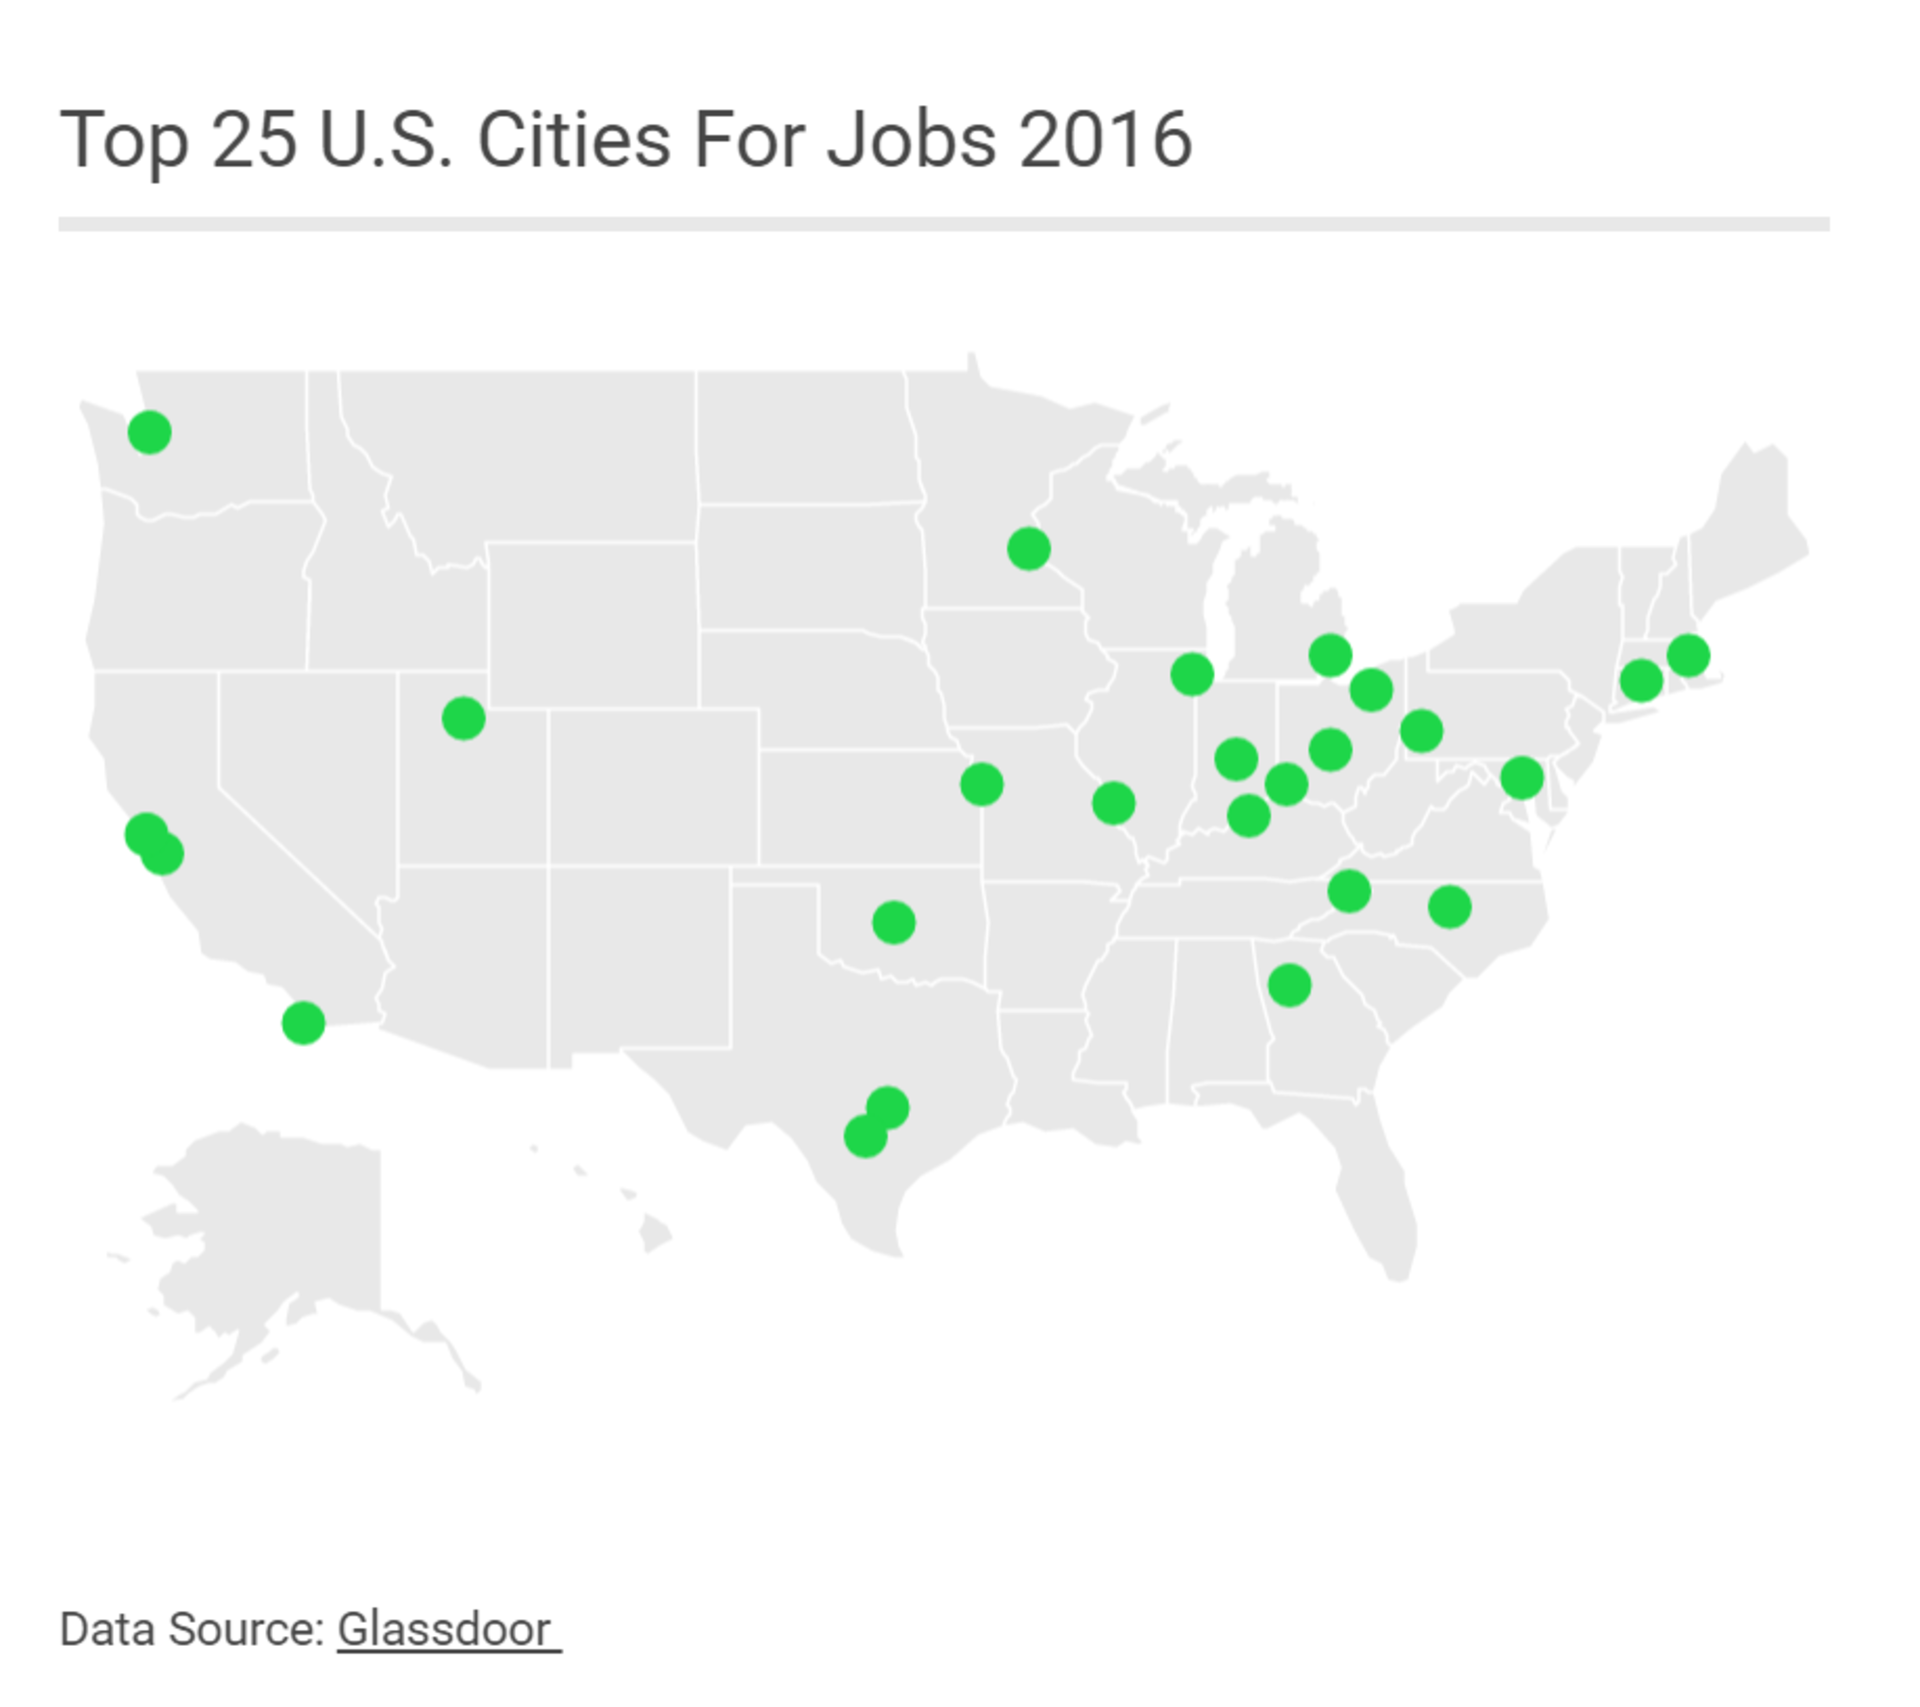 Raleigh Top 10 Cities for Jobs